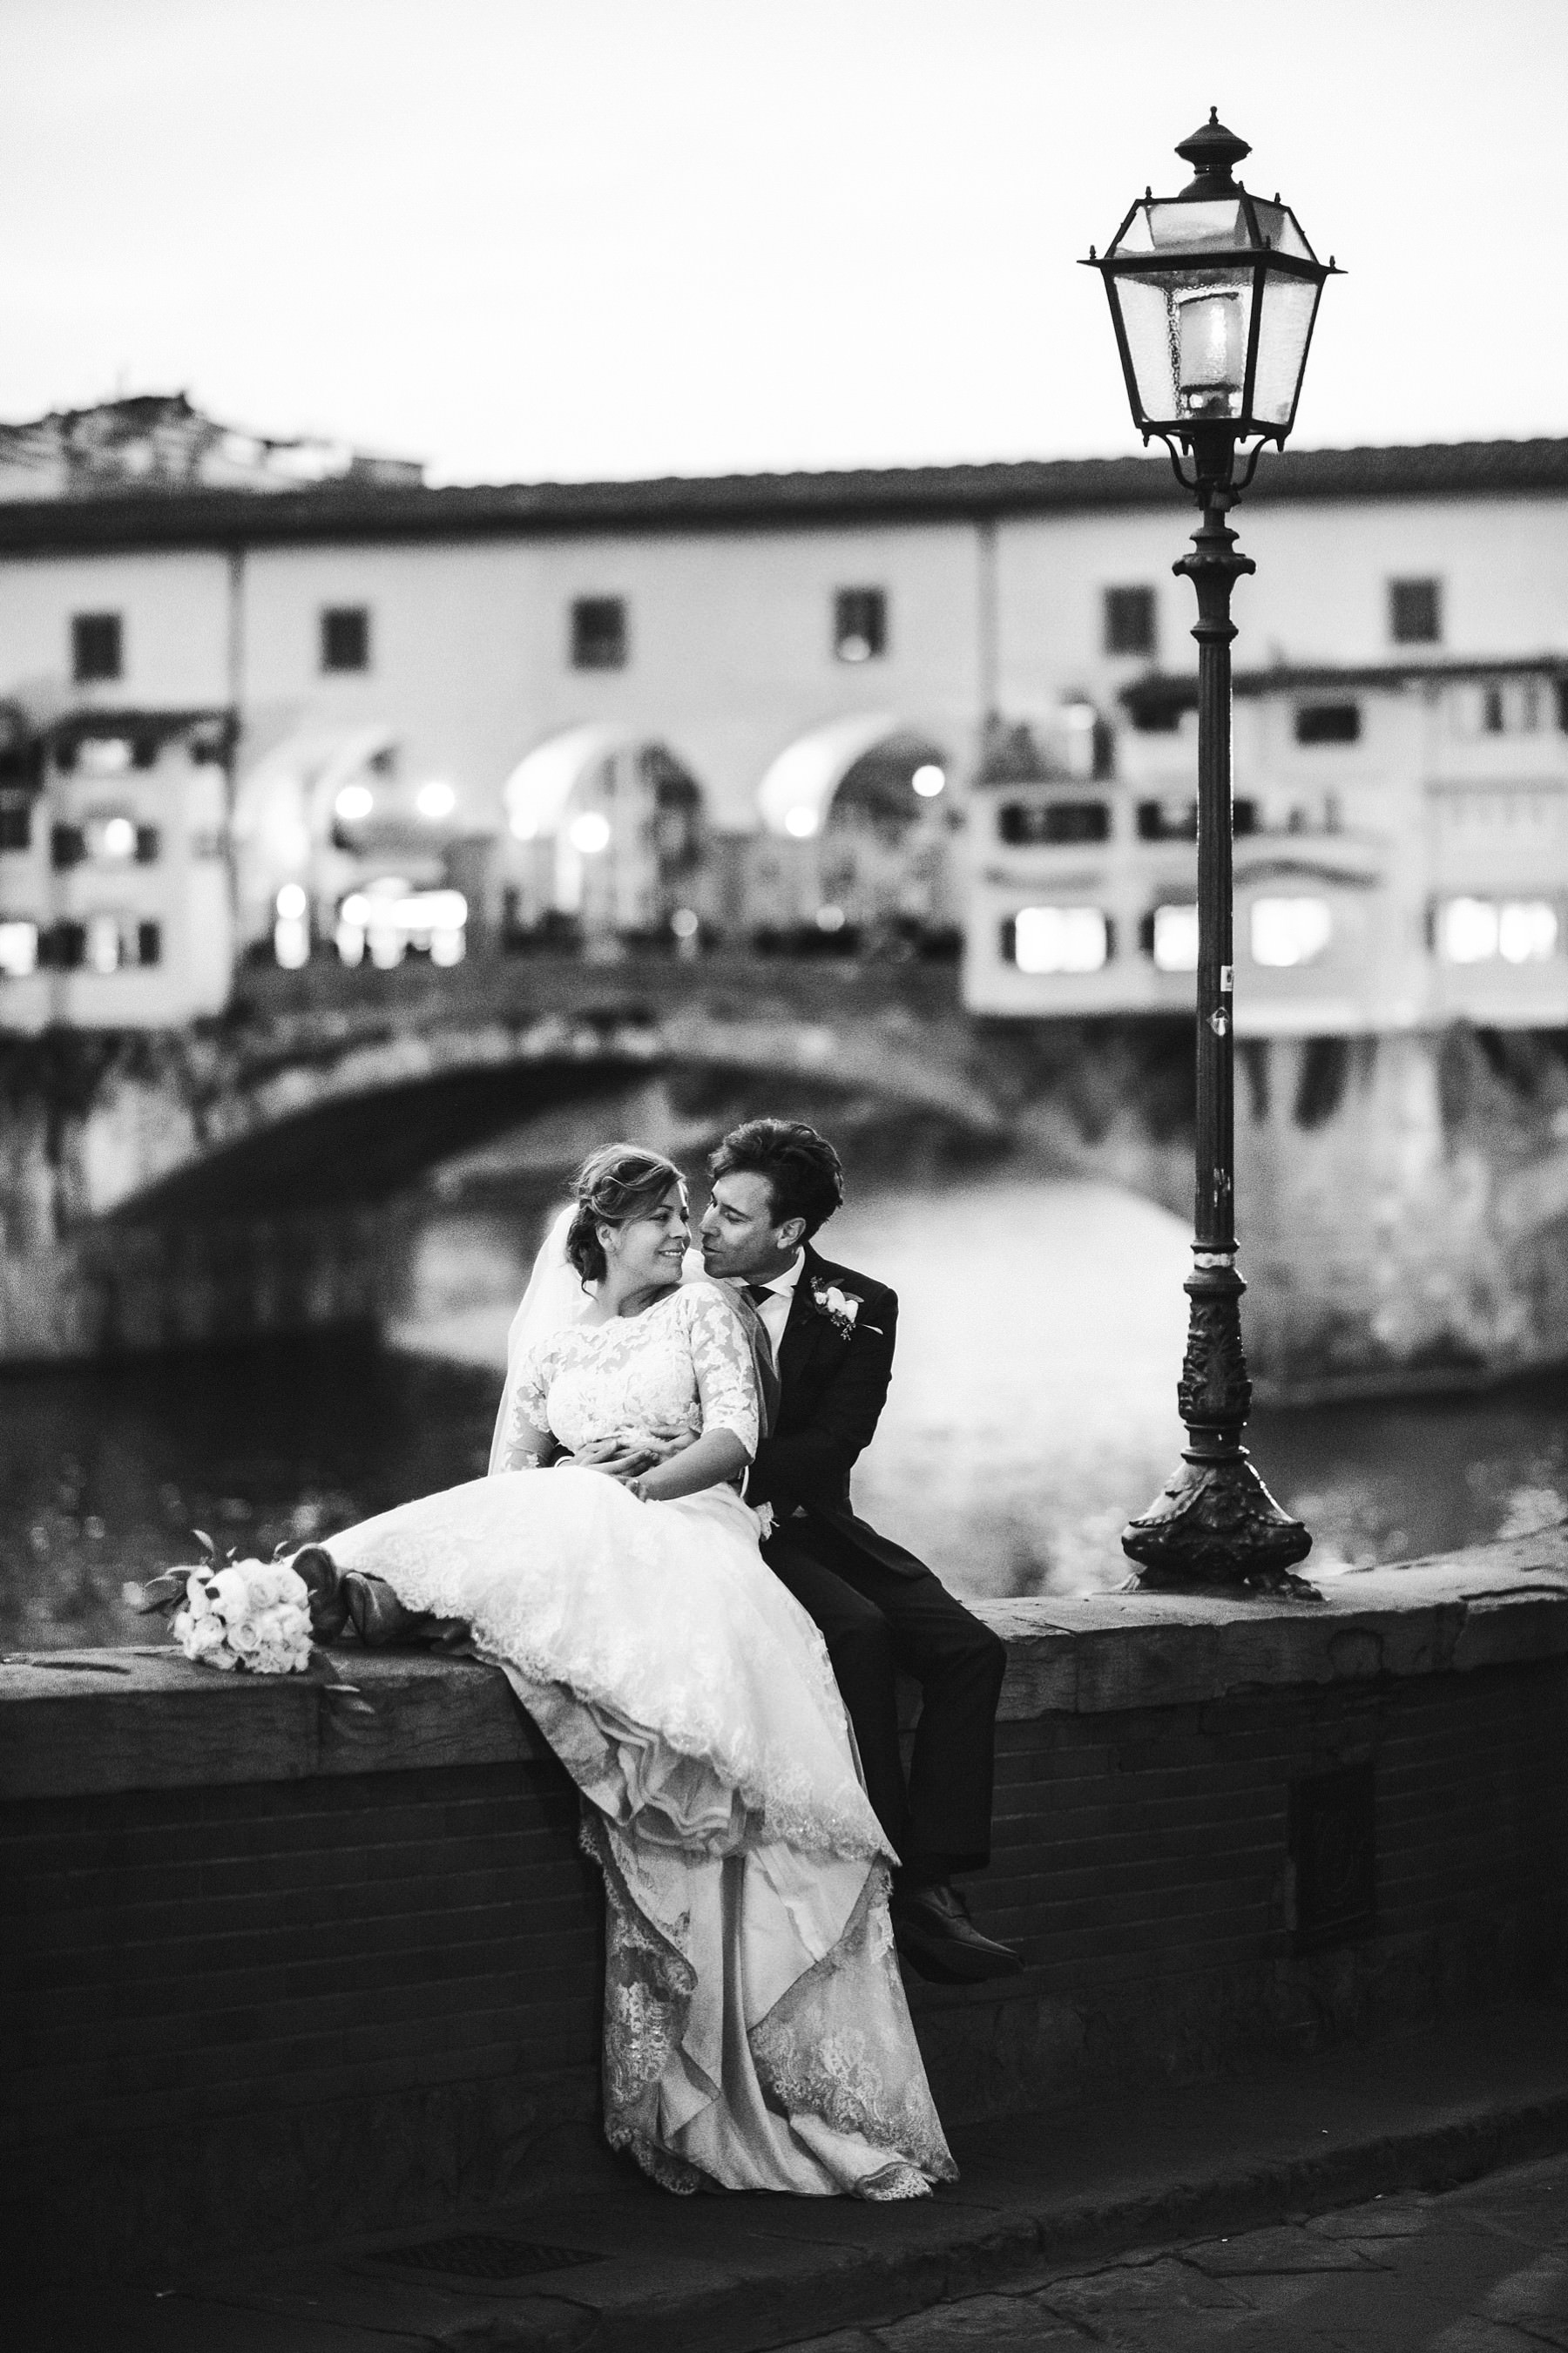 Elegant and romantic wedding photo by bride and groom near Ponte Vecchio. Luxury and elegant intimate destination wedding in Florence at Hotel St. Regis